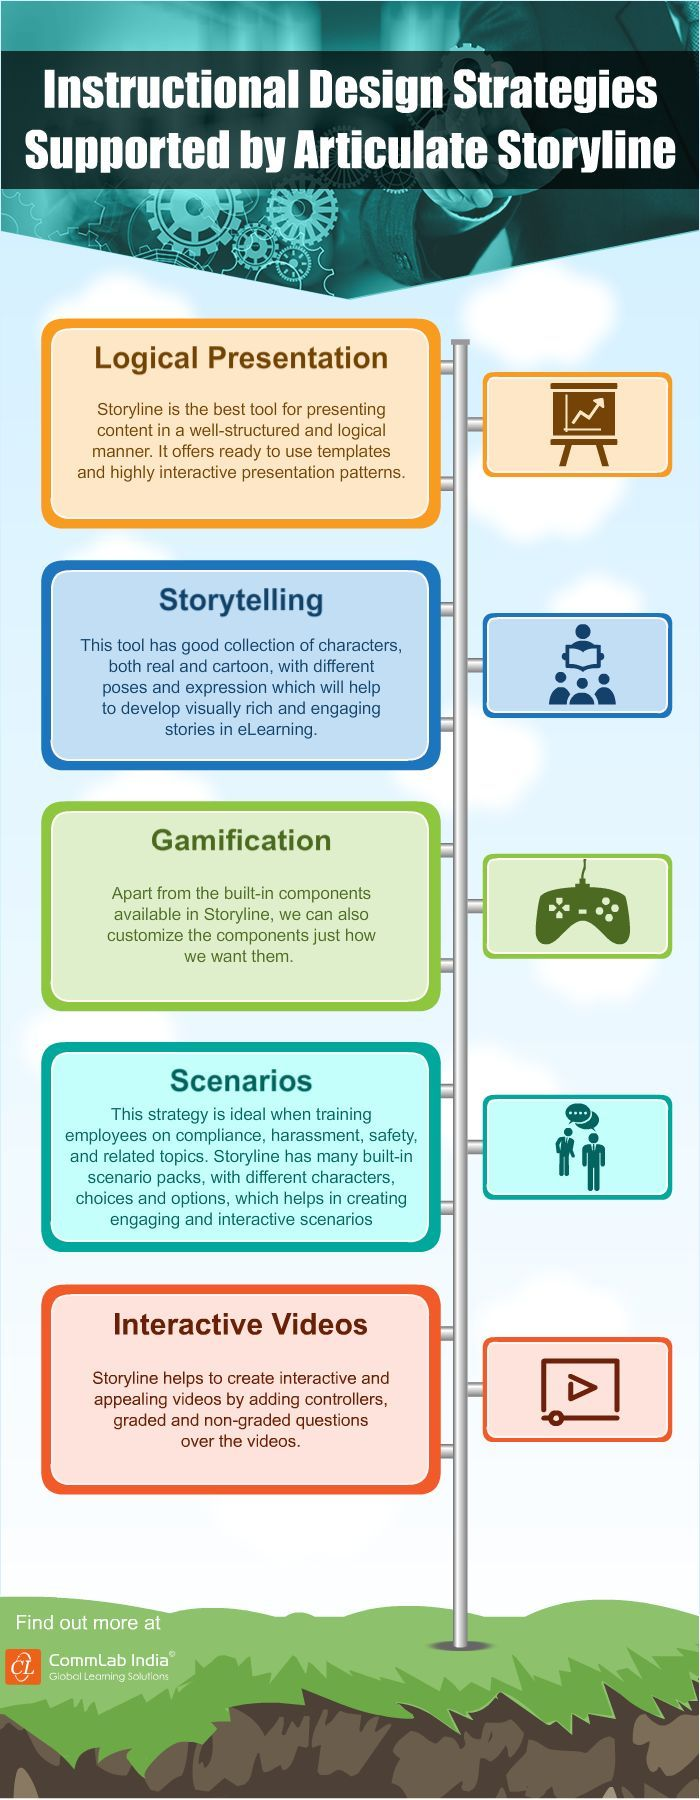 Instructional Design Strategies Supported by Articulate Storyline [Infographic]. If you're a user experience professional, listen to The UX Blog Podcast on iTunes.